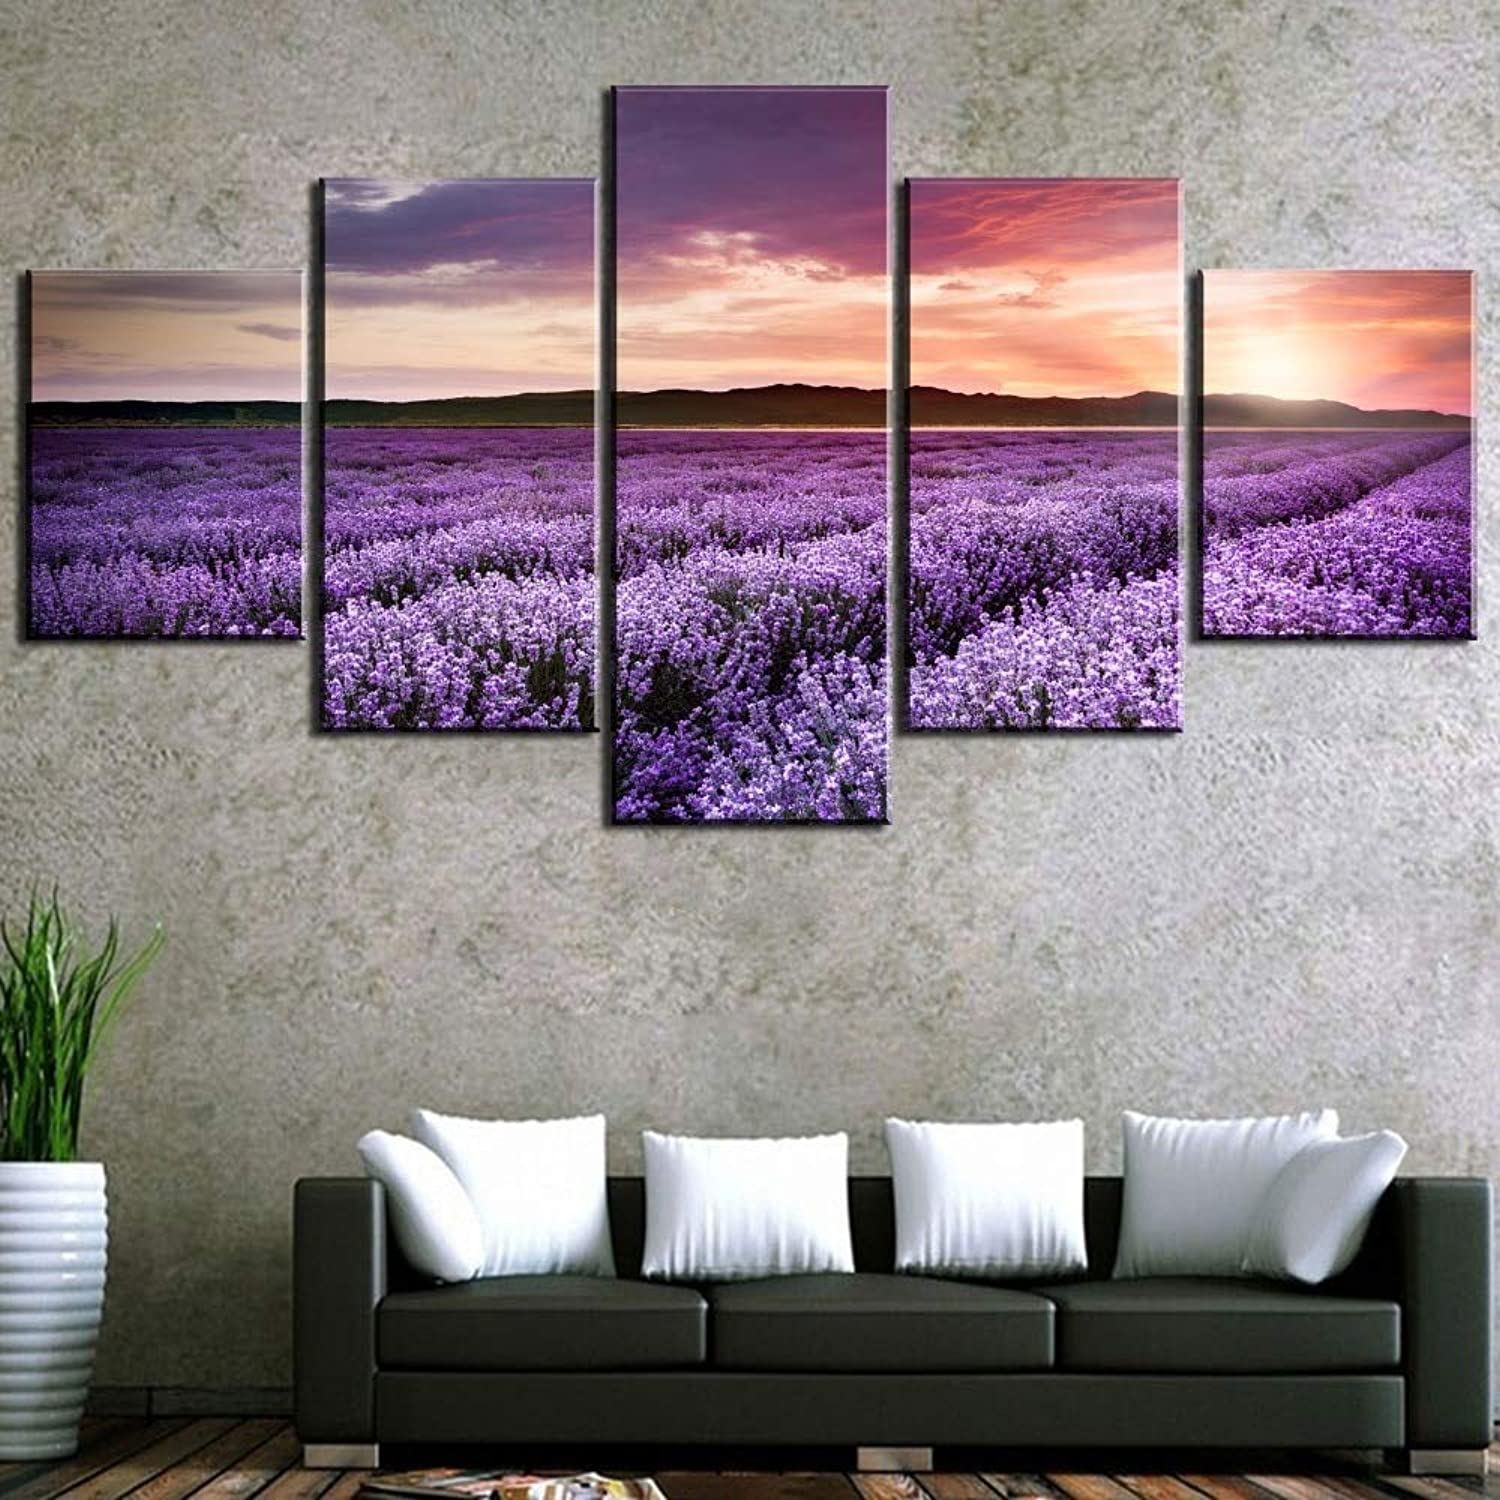 LONLLHB Painting Canvas Painting 5 Hd Print Lavender Field Landscape Canvas Wall Art Home Decor for Living Room Unique Gift Wall Picture